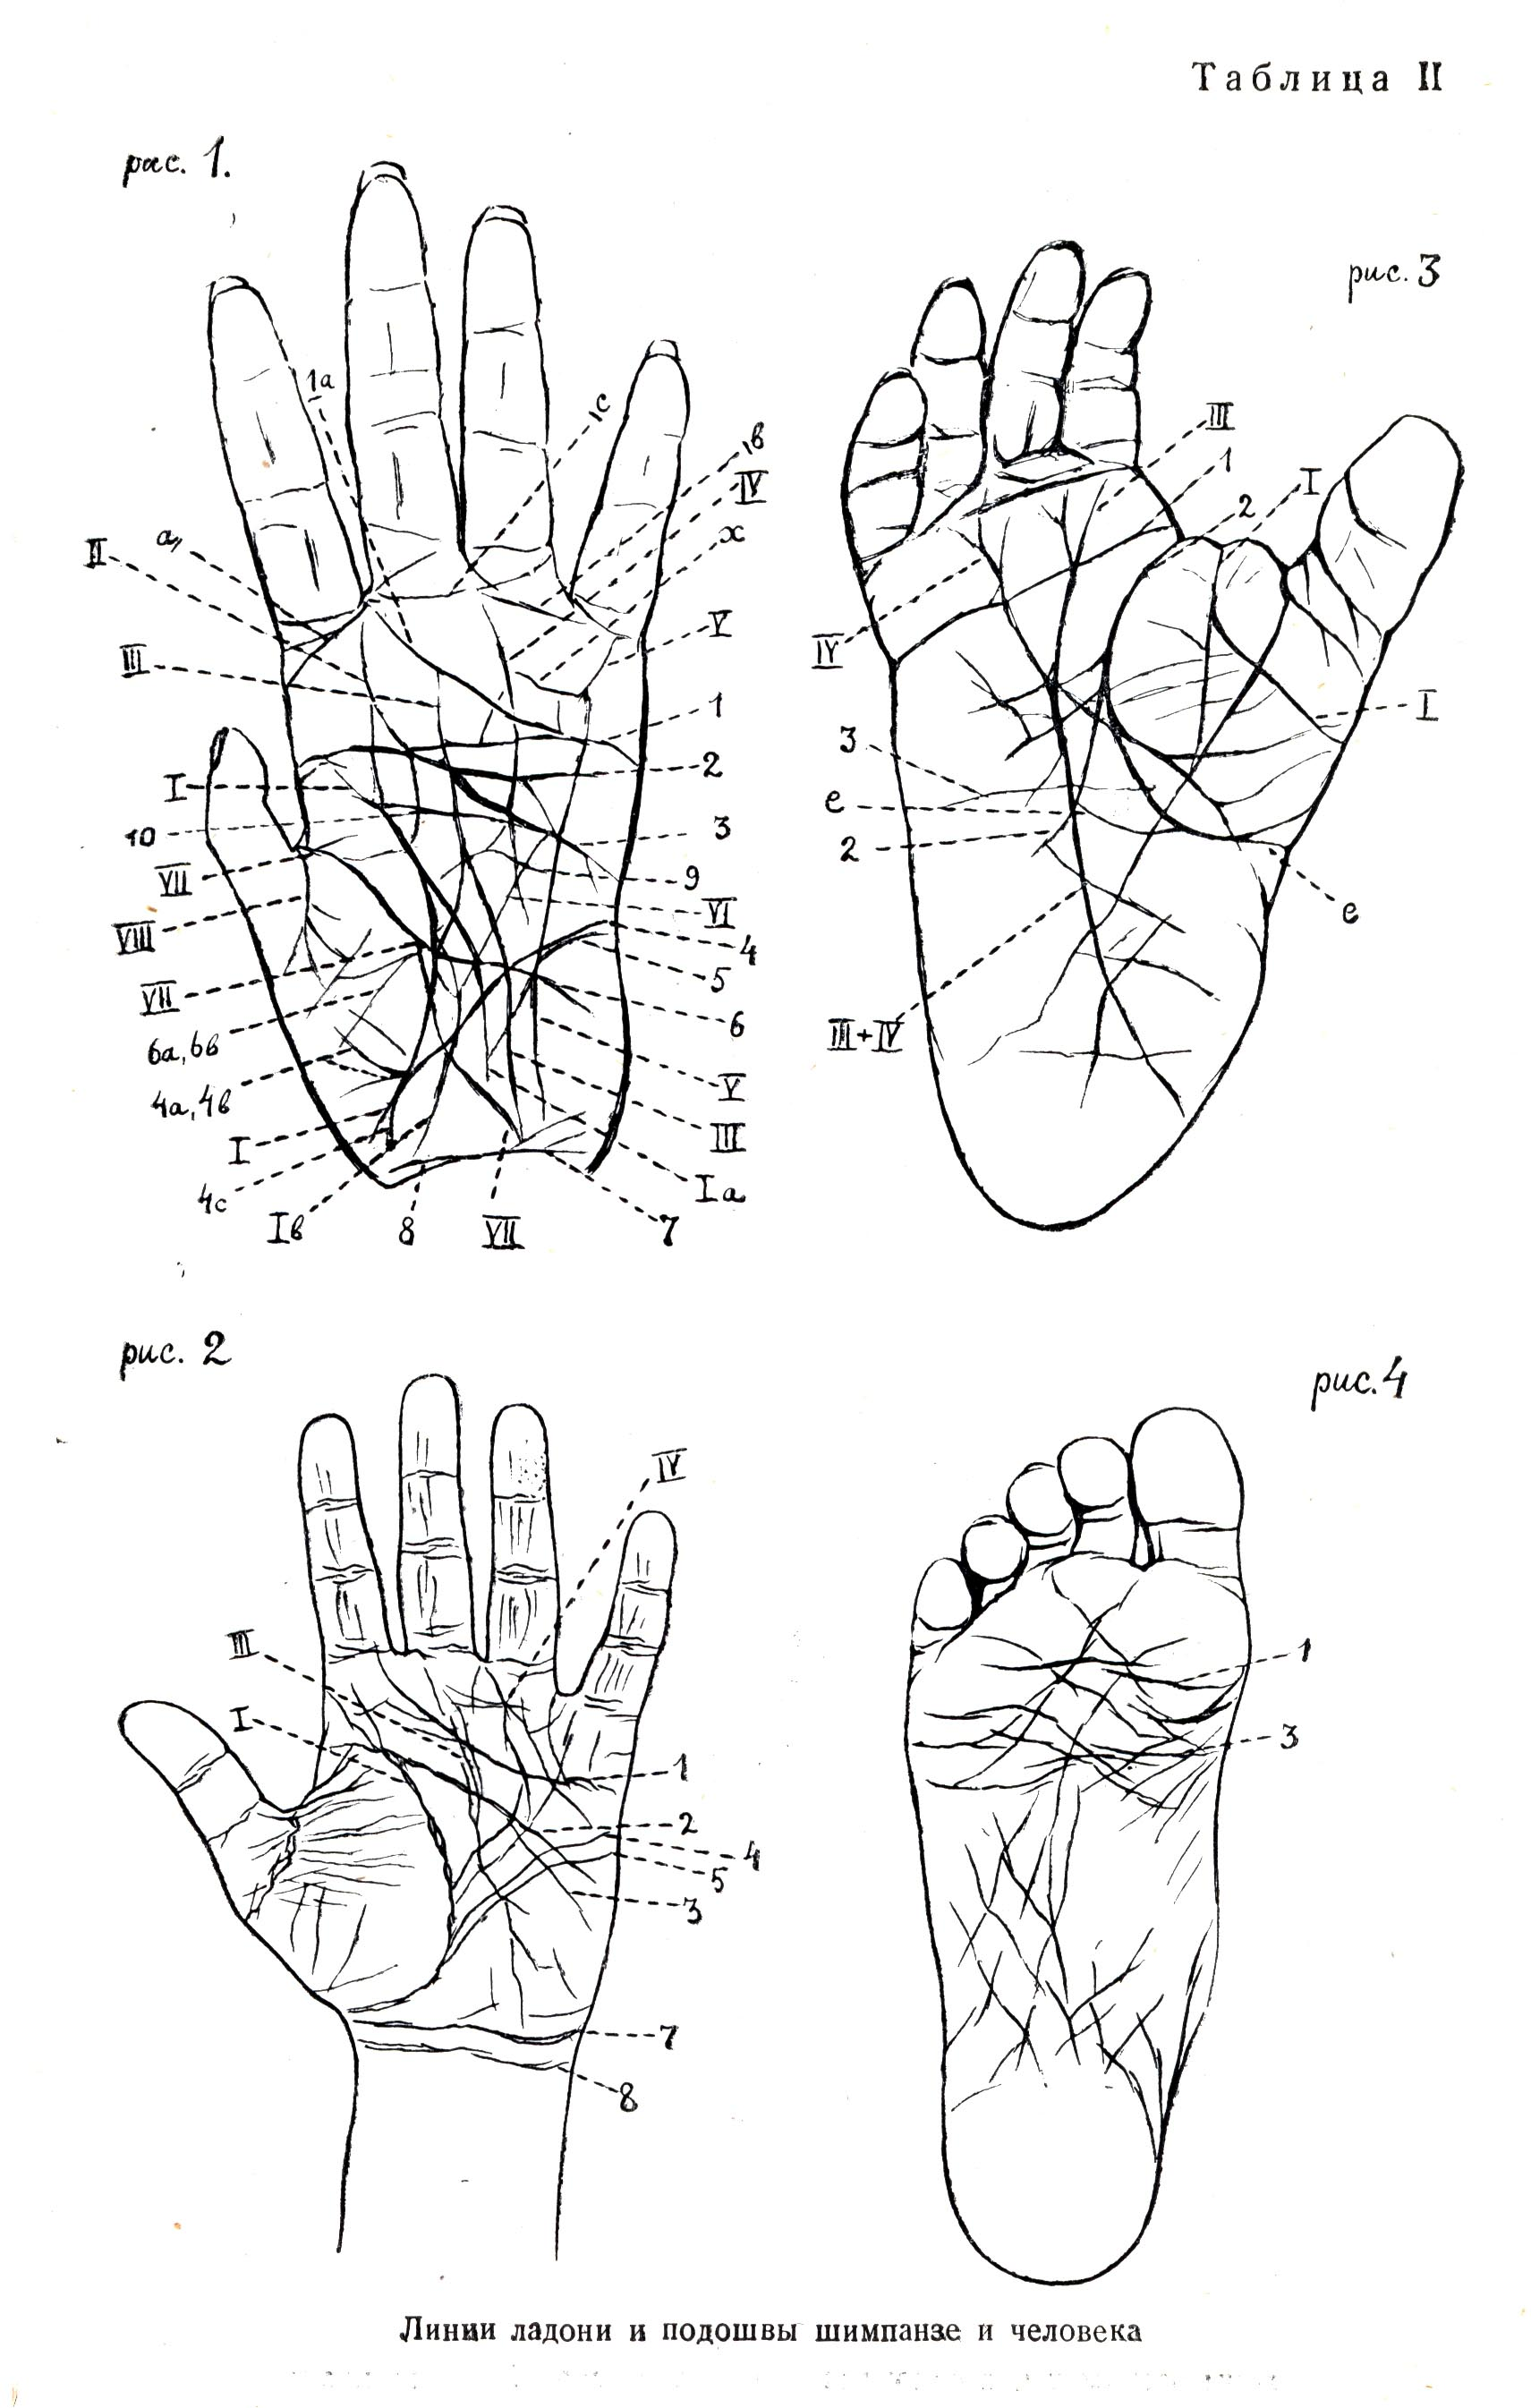 Hand lines of the chimpanzee